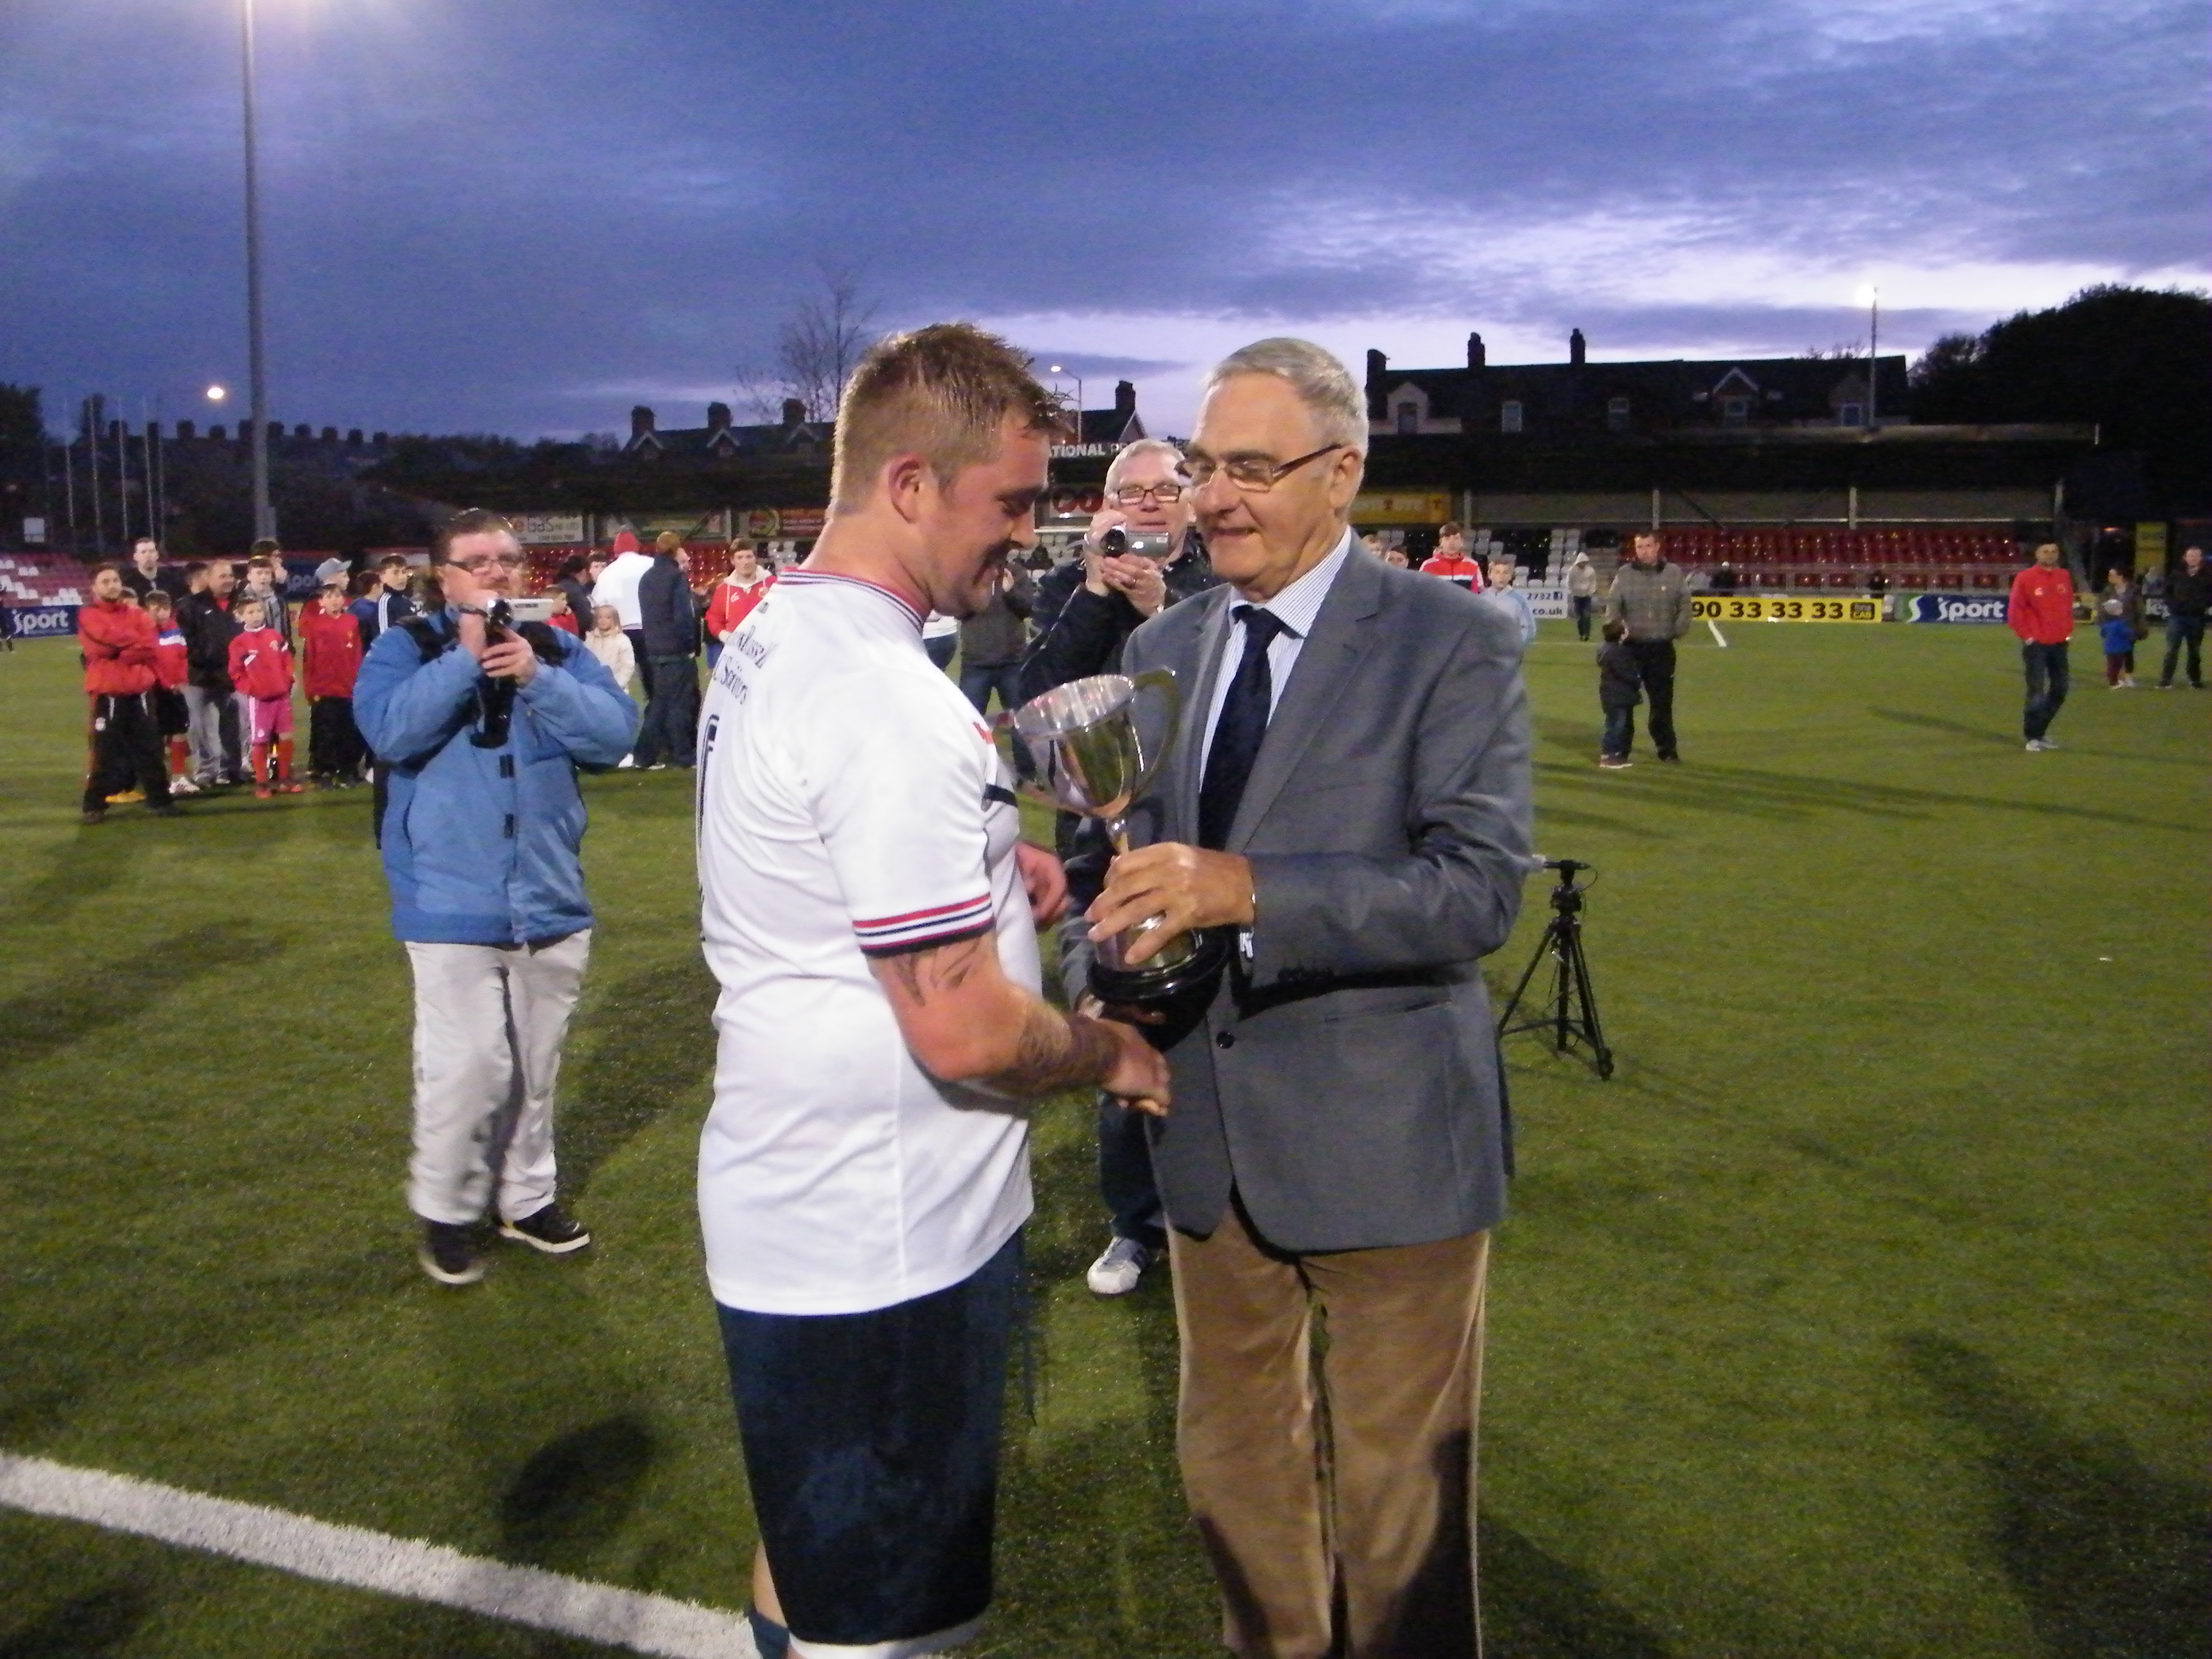 East Belfast Captain  receives the Templeton Cup from League Chairman Terry Pateman